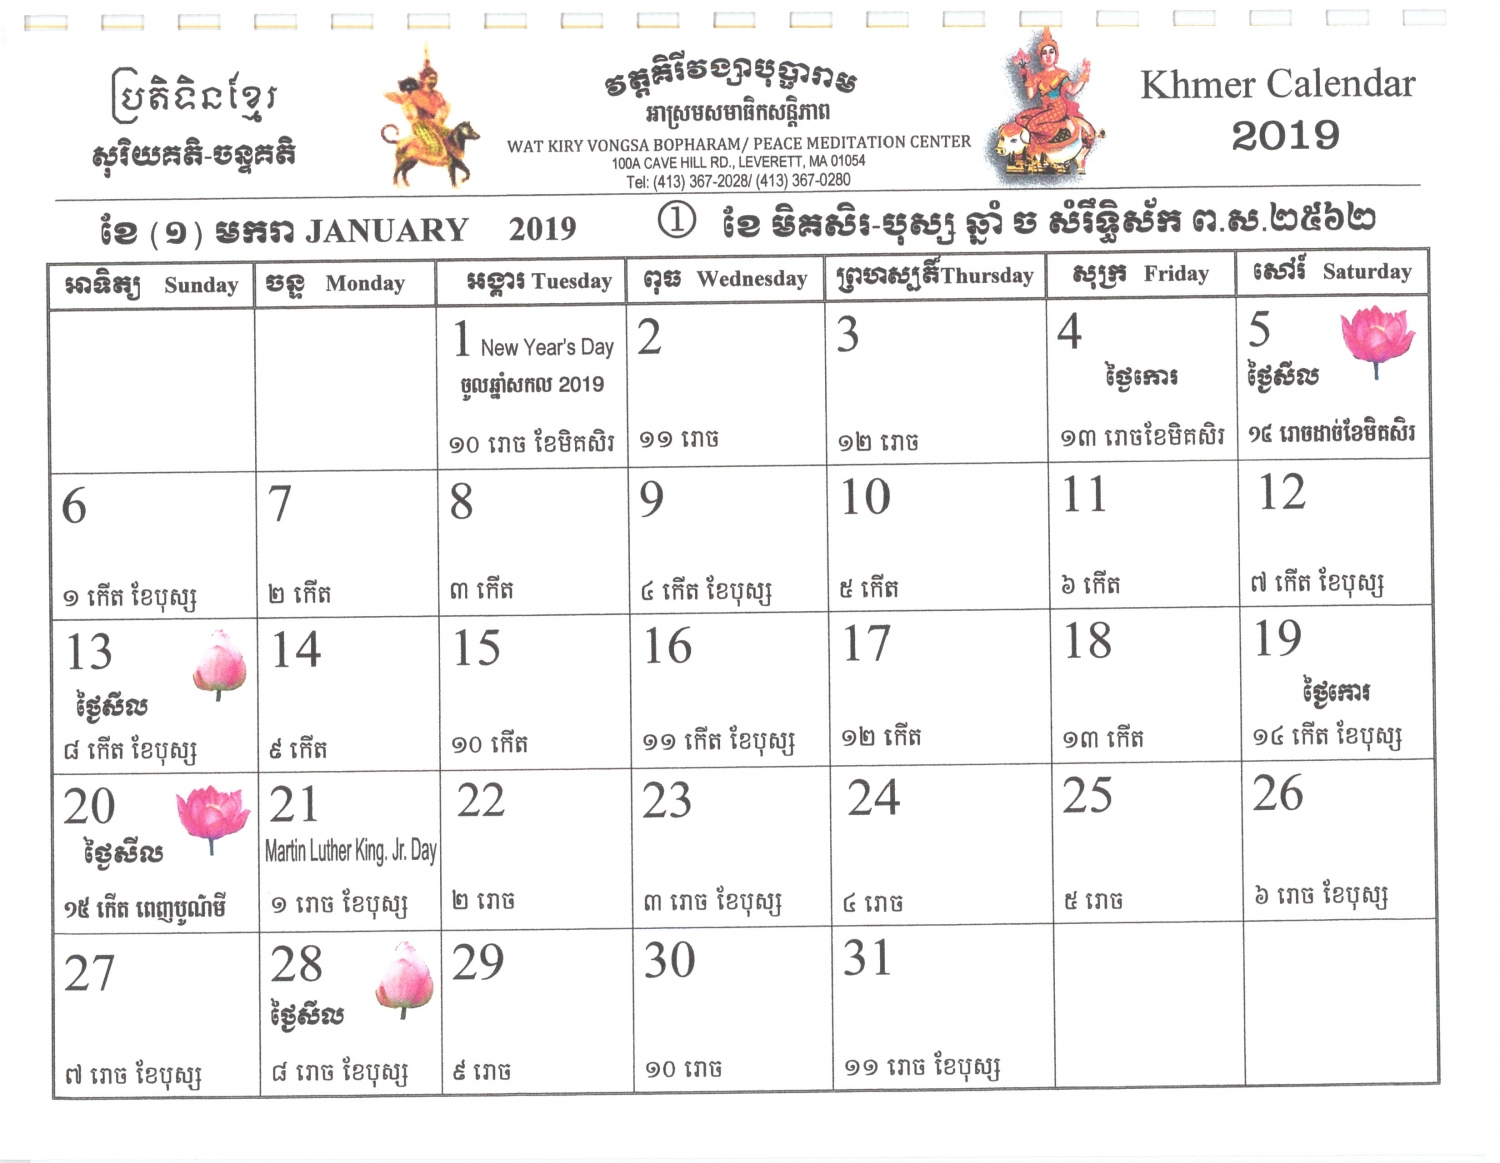 Khmer Calendar 2017 Yearly throughout Khmer Calendar 2020 October